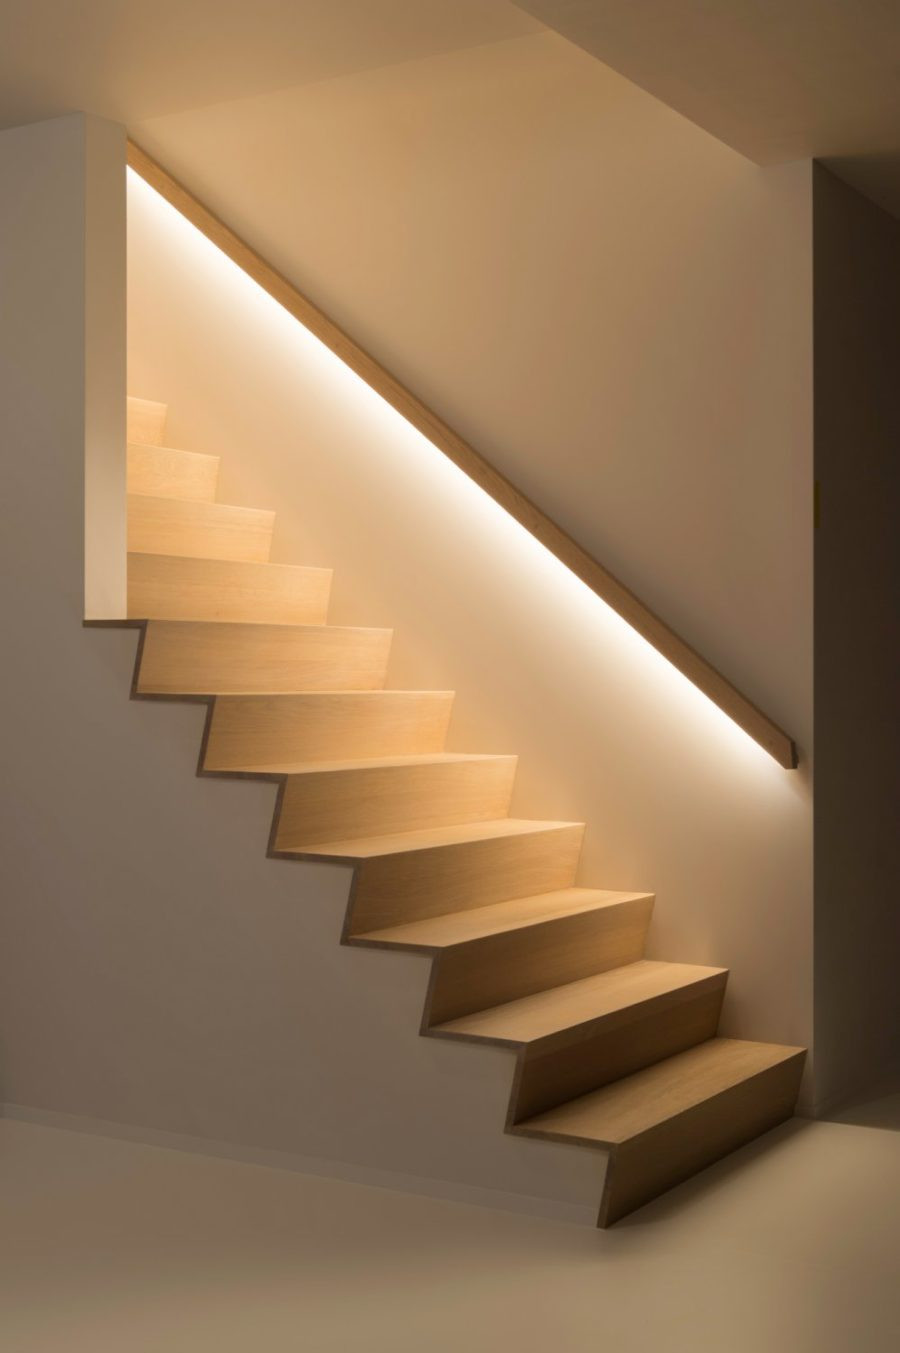 Best ideas about Lighting For Stair . Save or Pin Make Your Home Beam And Glow With Built in Lighting Now.